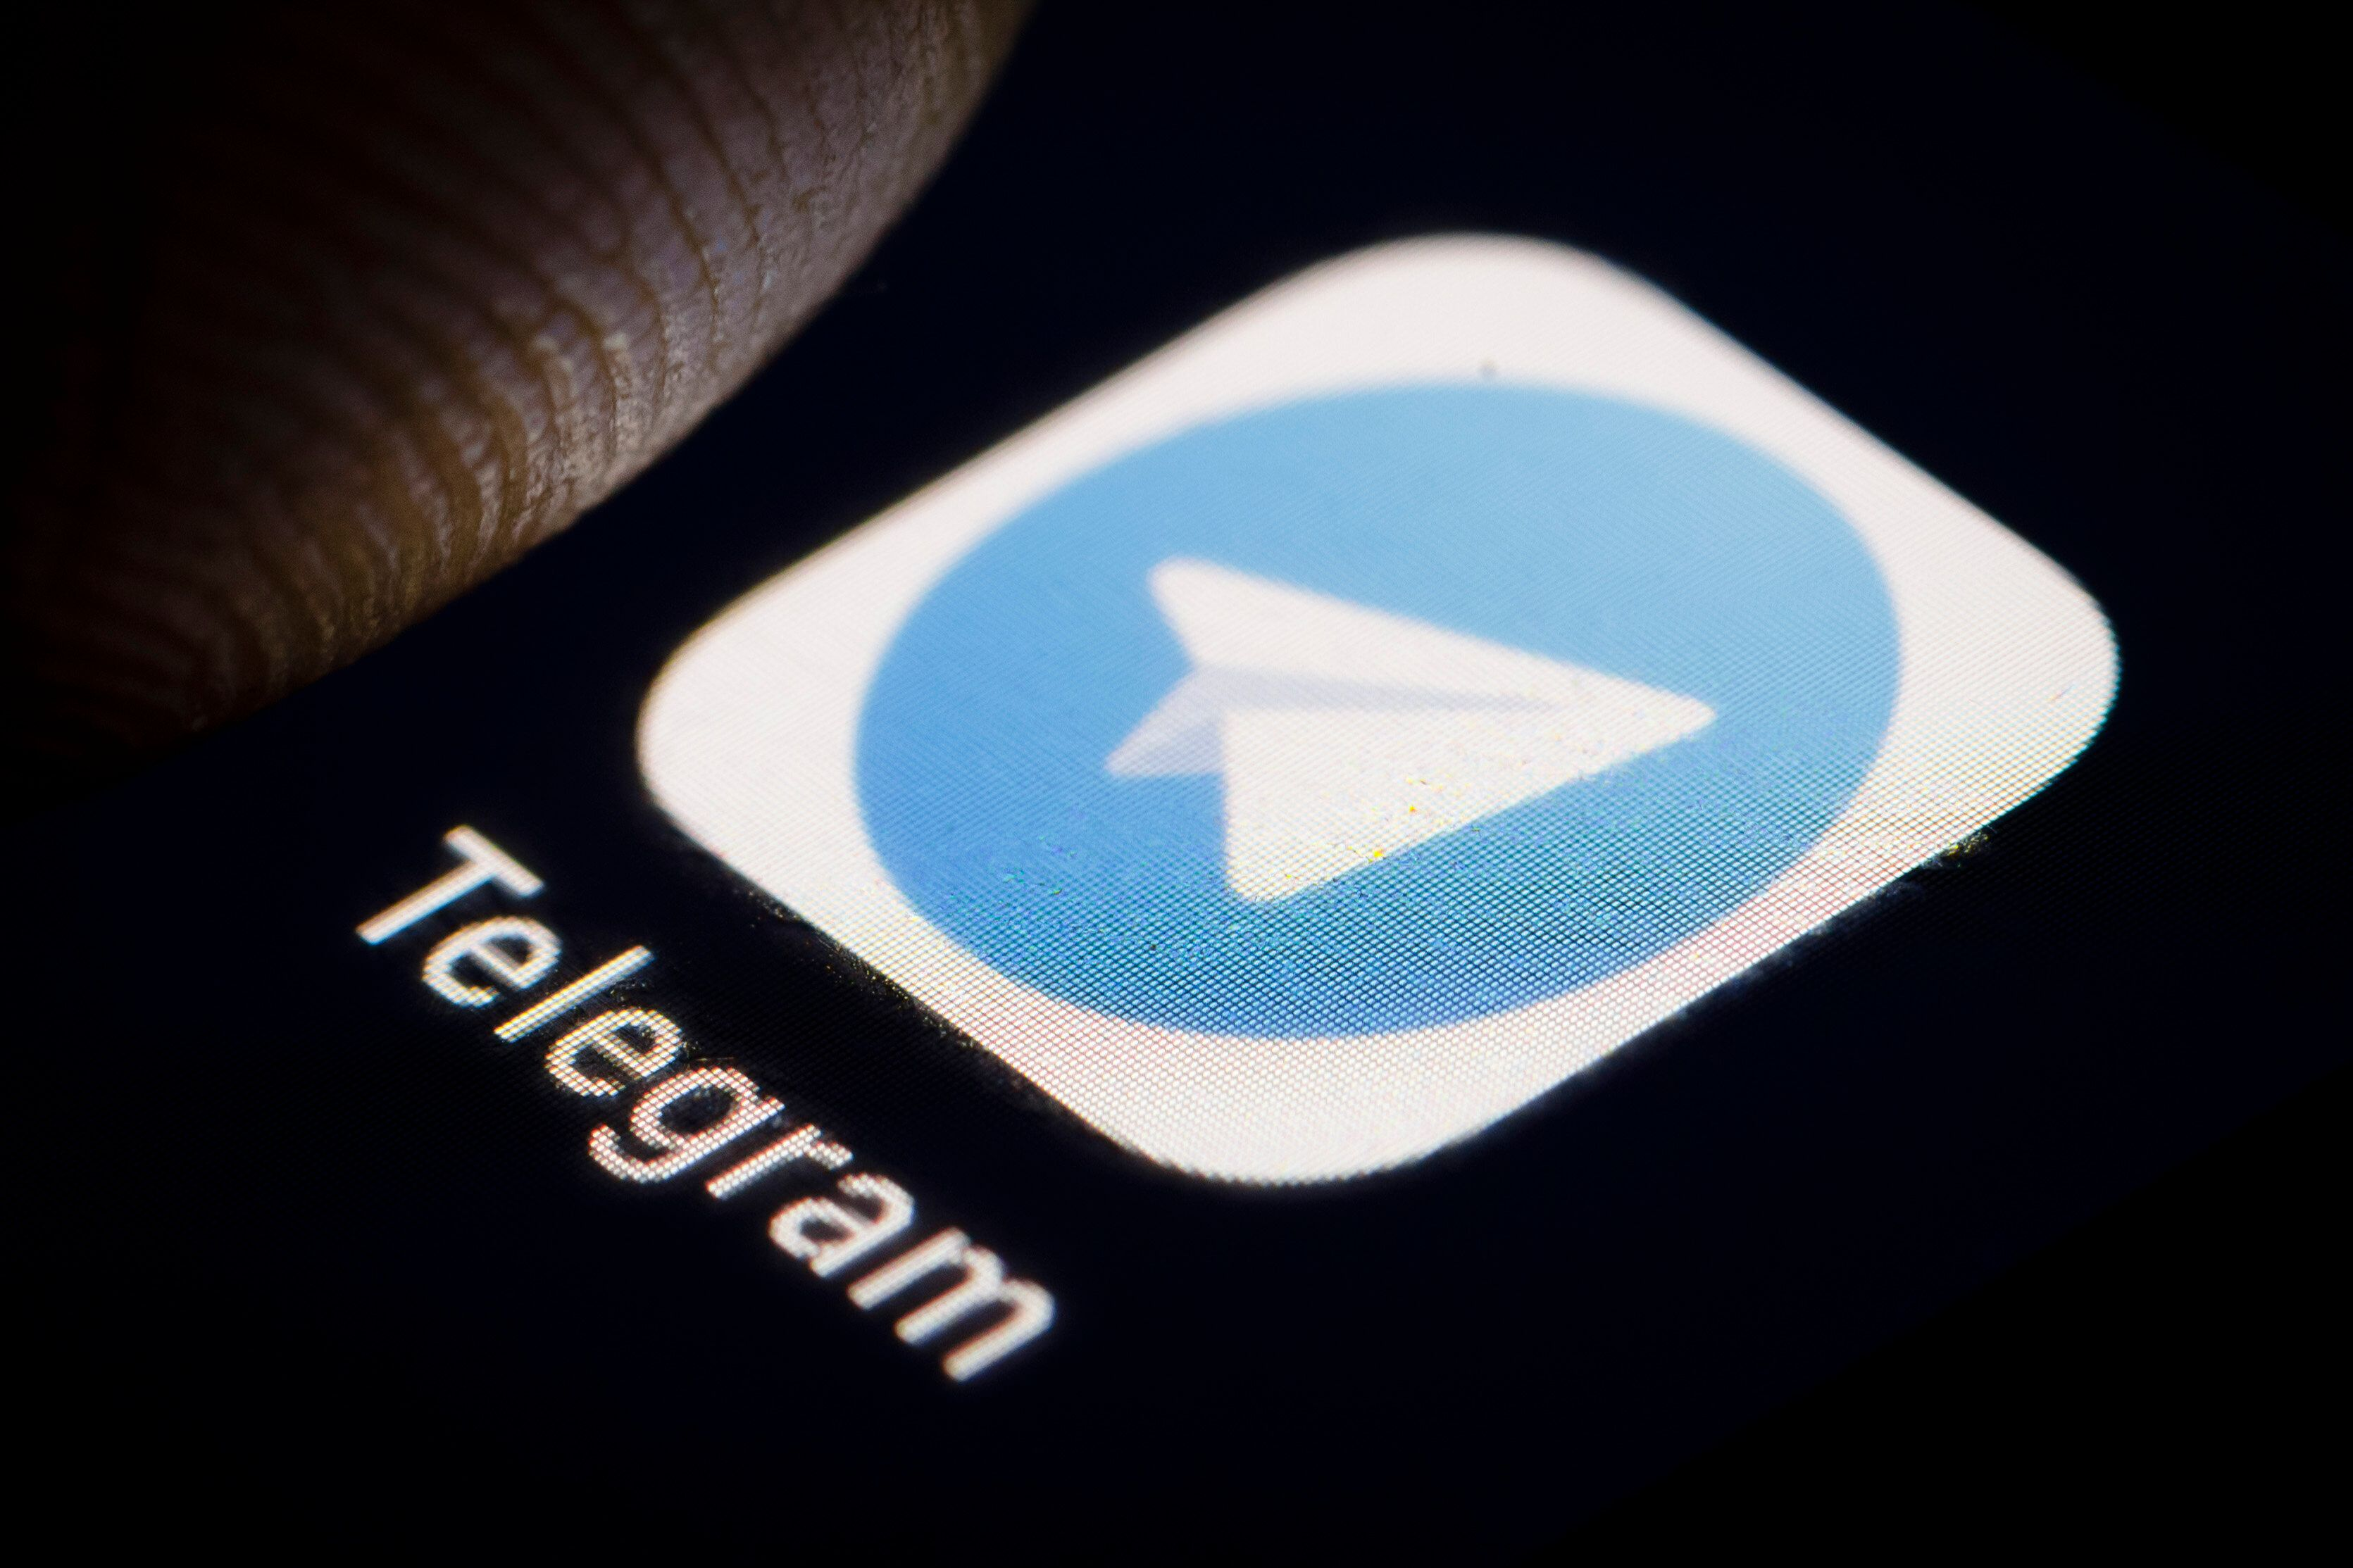 BERLIN, GERMANY - DECEMBER 14: The Logo of cloud-based instant messaging and voice over IP service Telegram is displayed on a smartphone on December 14, 2018 in Berlin, Germany. (Photo by Thomas Trutschel/Photothek via Getty Images)